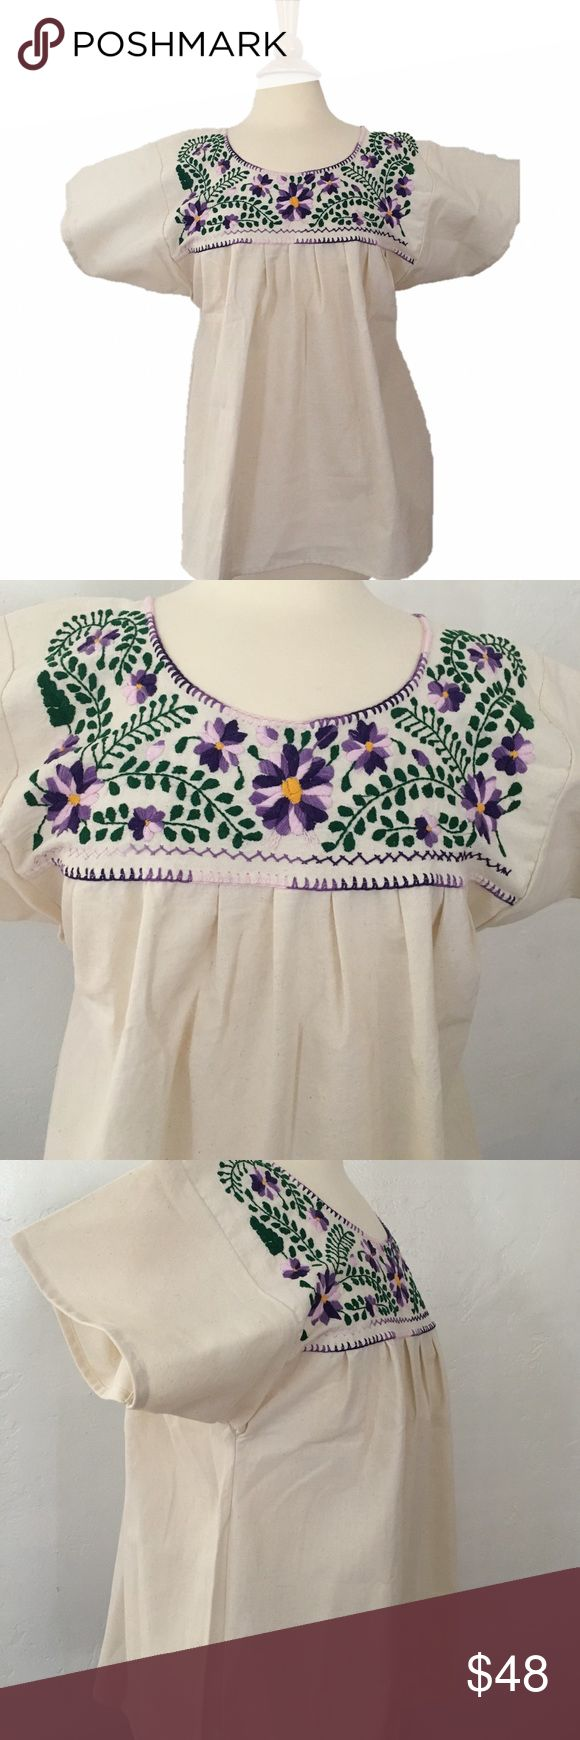 Purple Embroidered Boho Artisan Festival Blouse Super cute bohemian top from Mexico. Purple Embroidery. New condition. Perfect for spring and summer and Coachella festival Mexico Tops